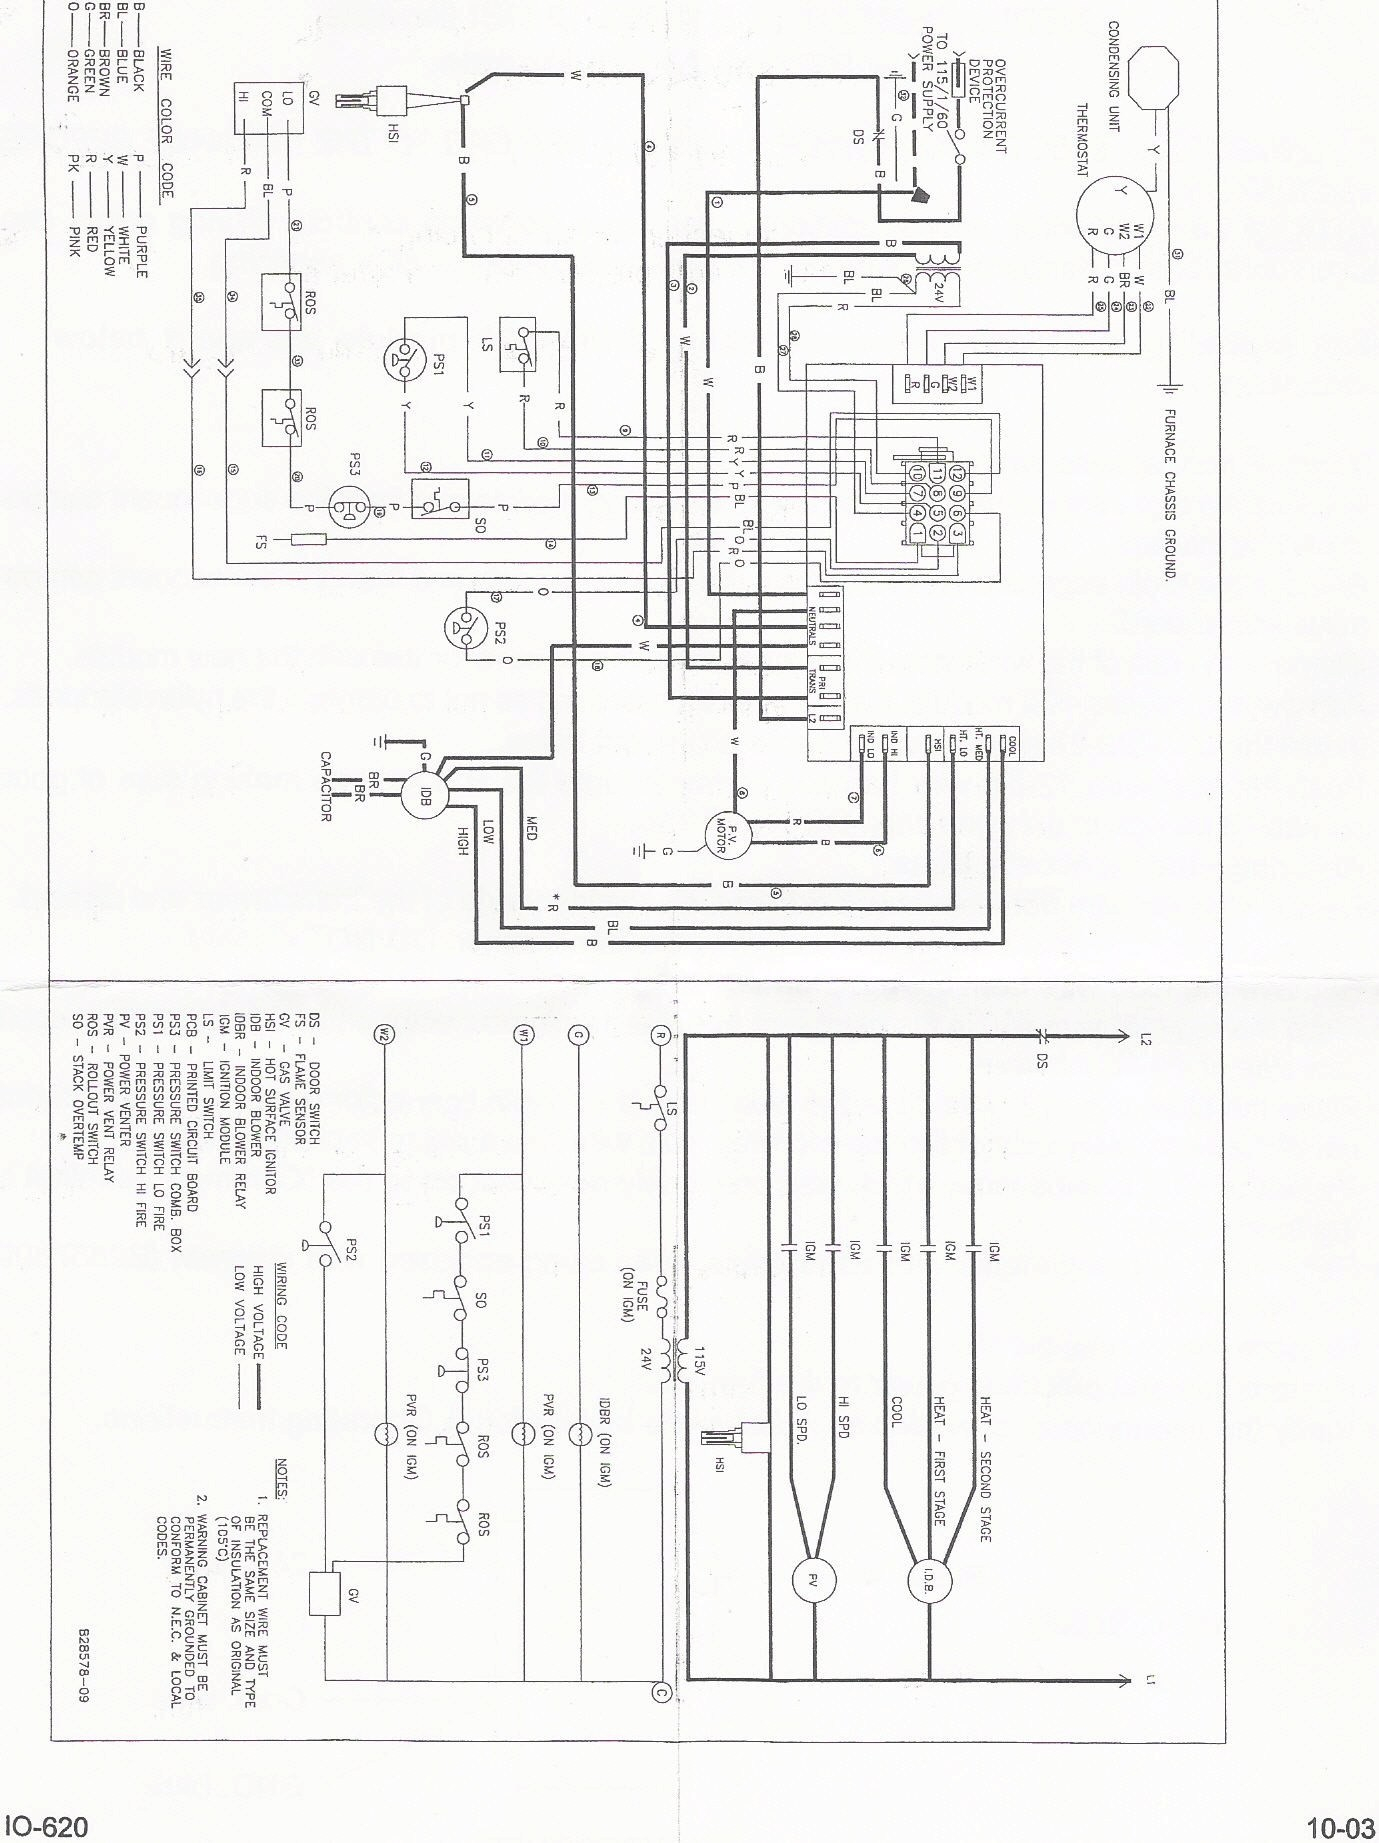 Goodman Heat Pump Package Unit Wiring Diagram - Parallel Battery Wiring  Diagram Rv Trailer - viiintage.holden-commodore.jeanjaures37.fr | Hvac Package Heat Pump Wiring Diagram |  | Wiring Diagram Resource